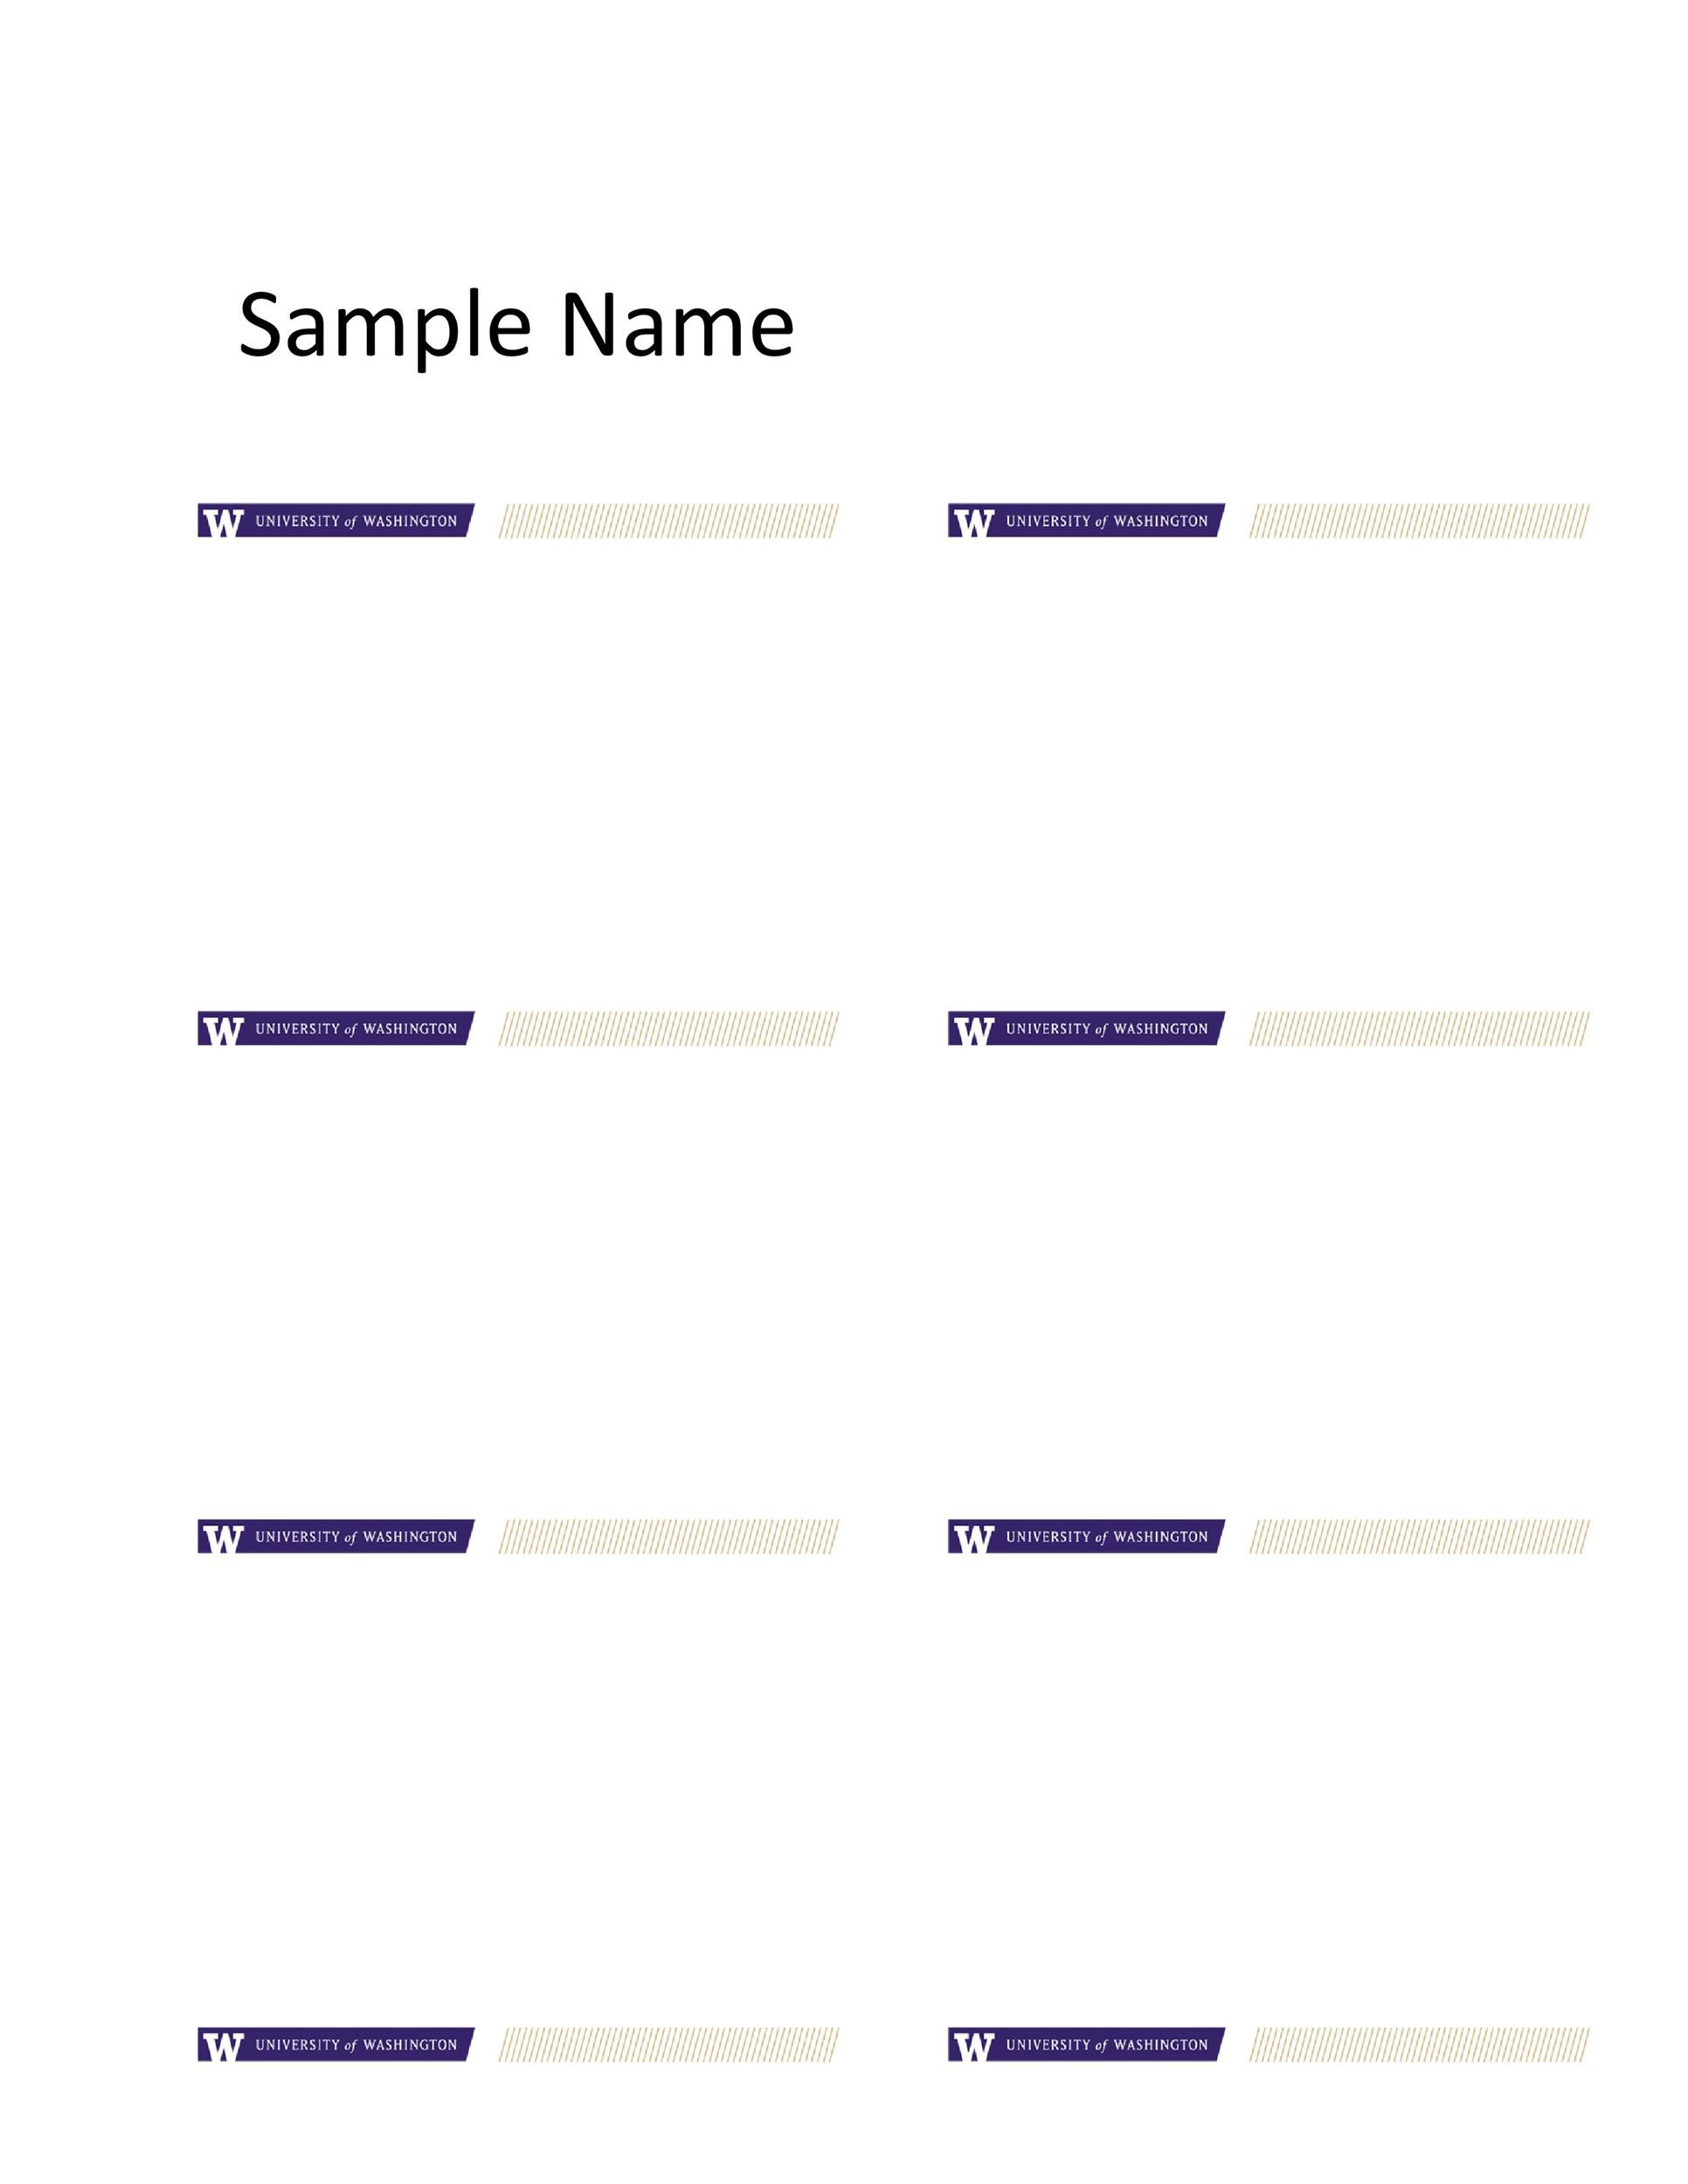 Free name tag template 46